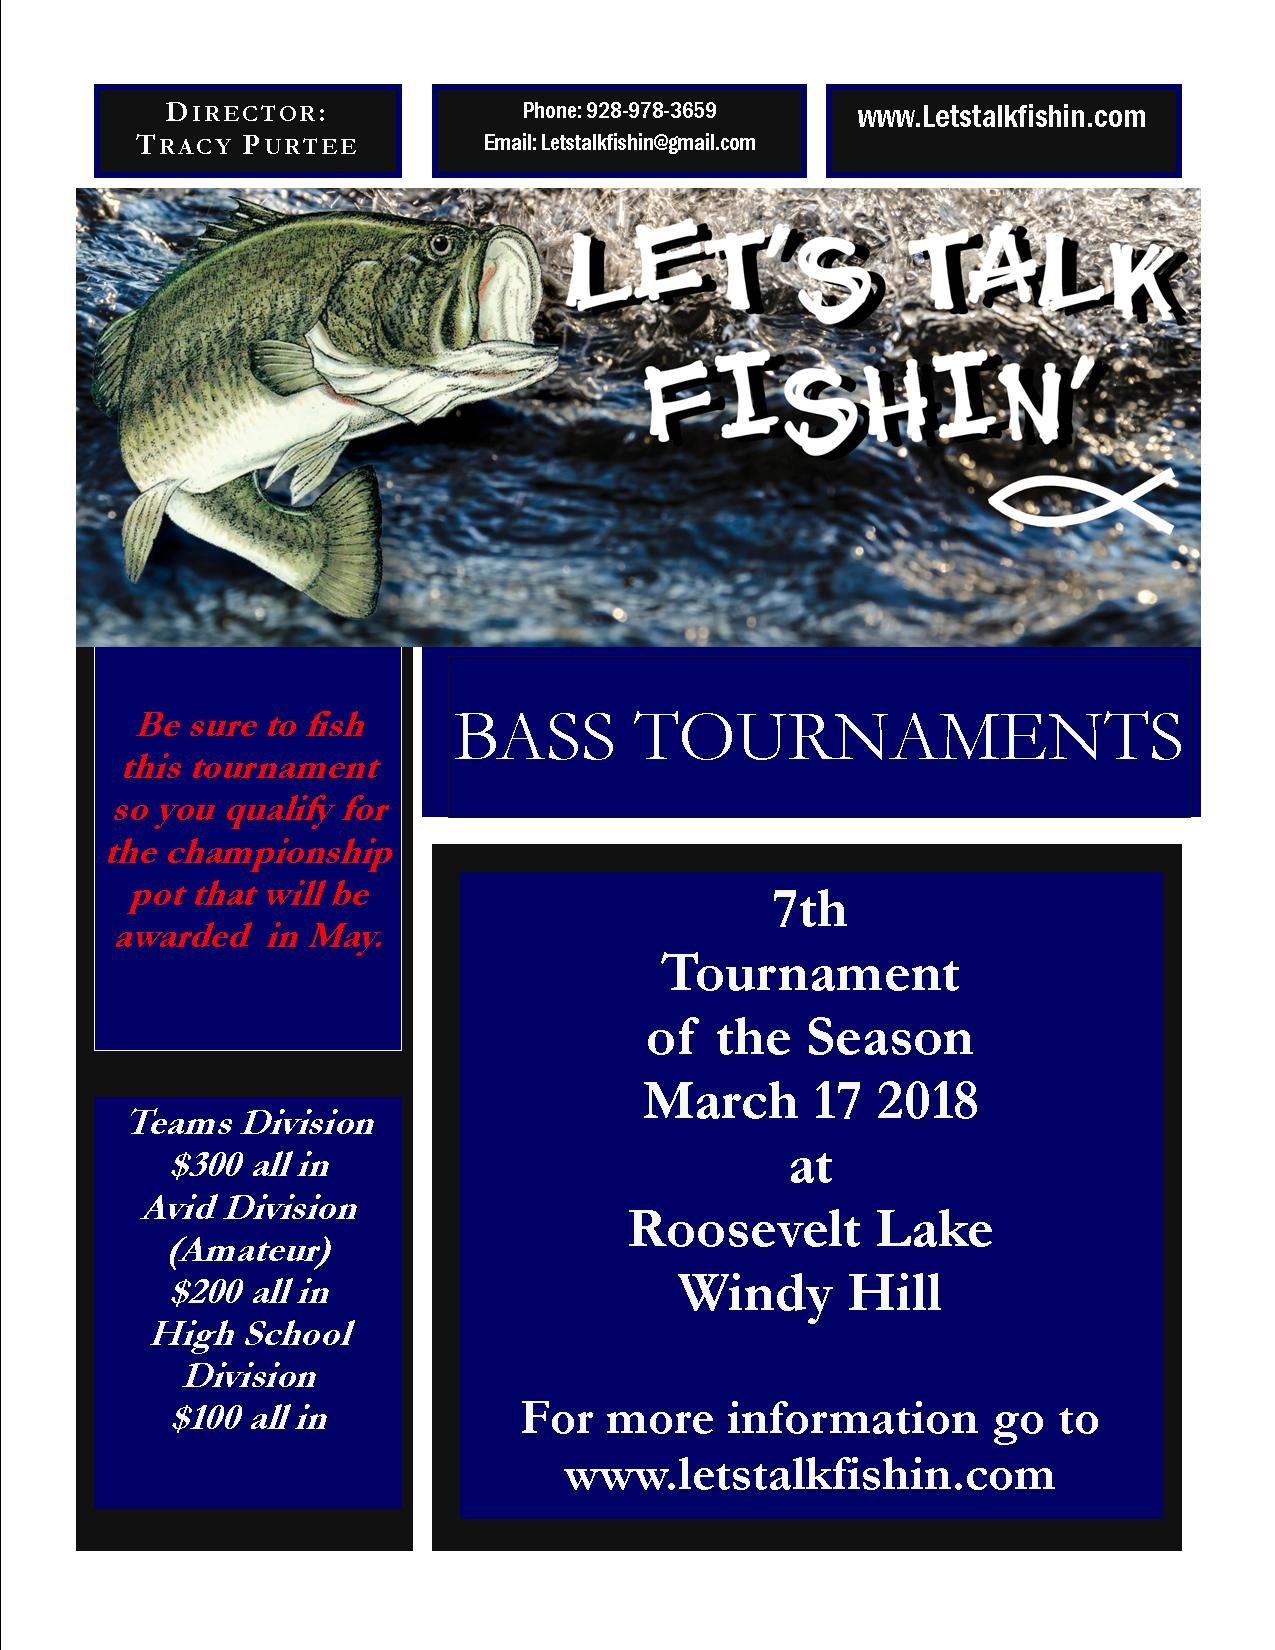 Click image for larger version  Name:7th Tournament.jpg Views:1105 Size:283.6 KB ID:96826